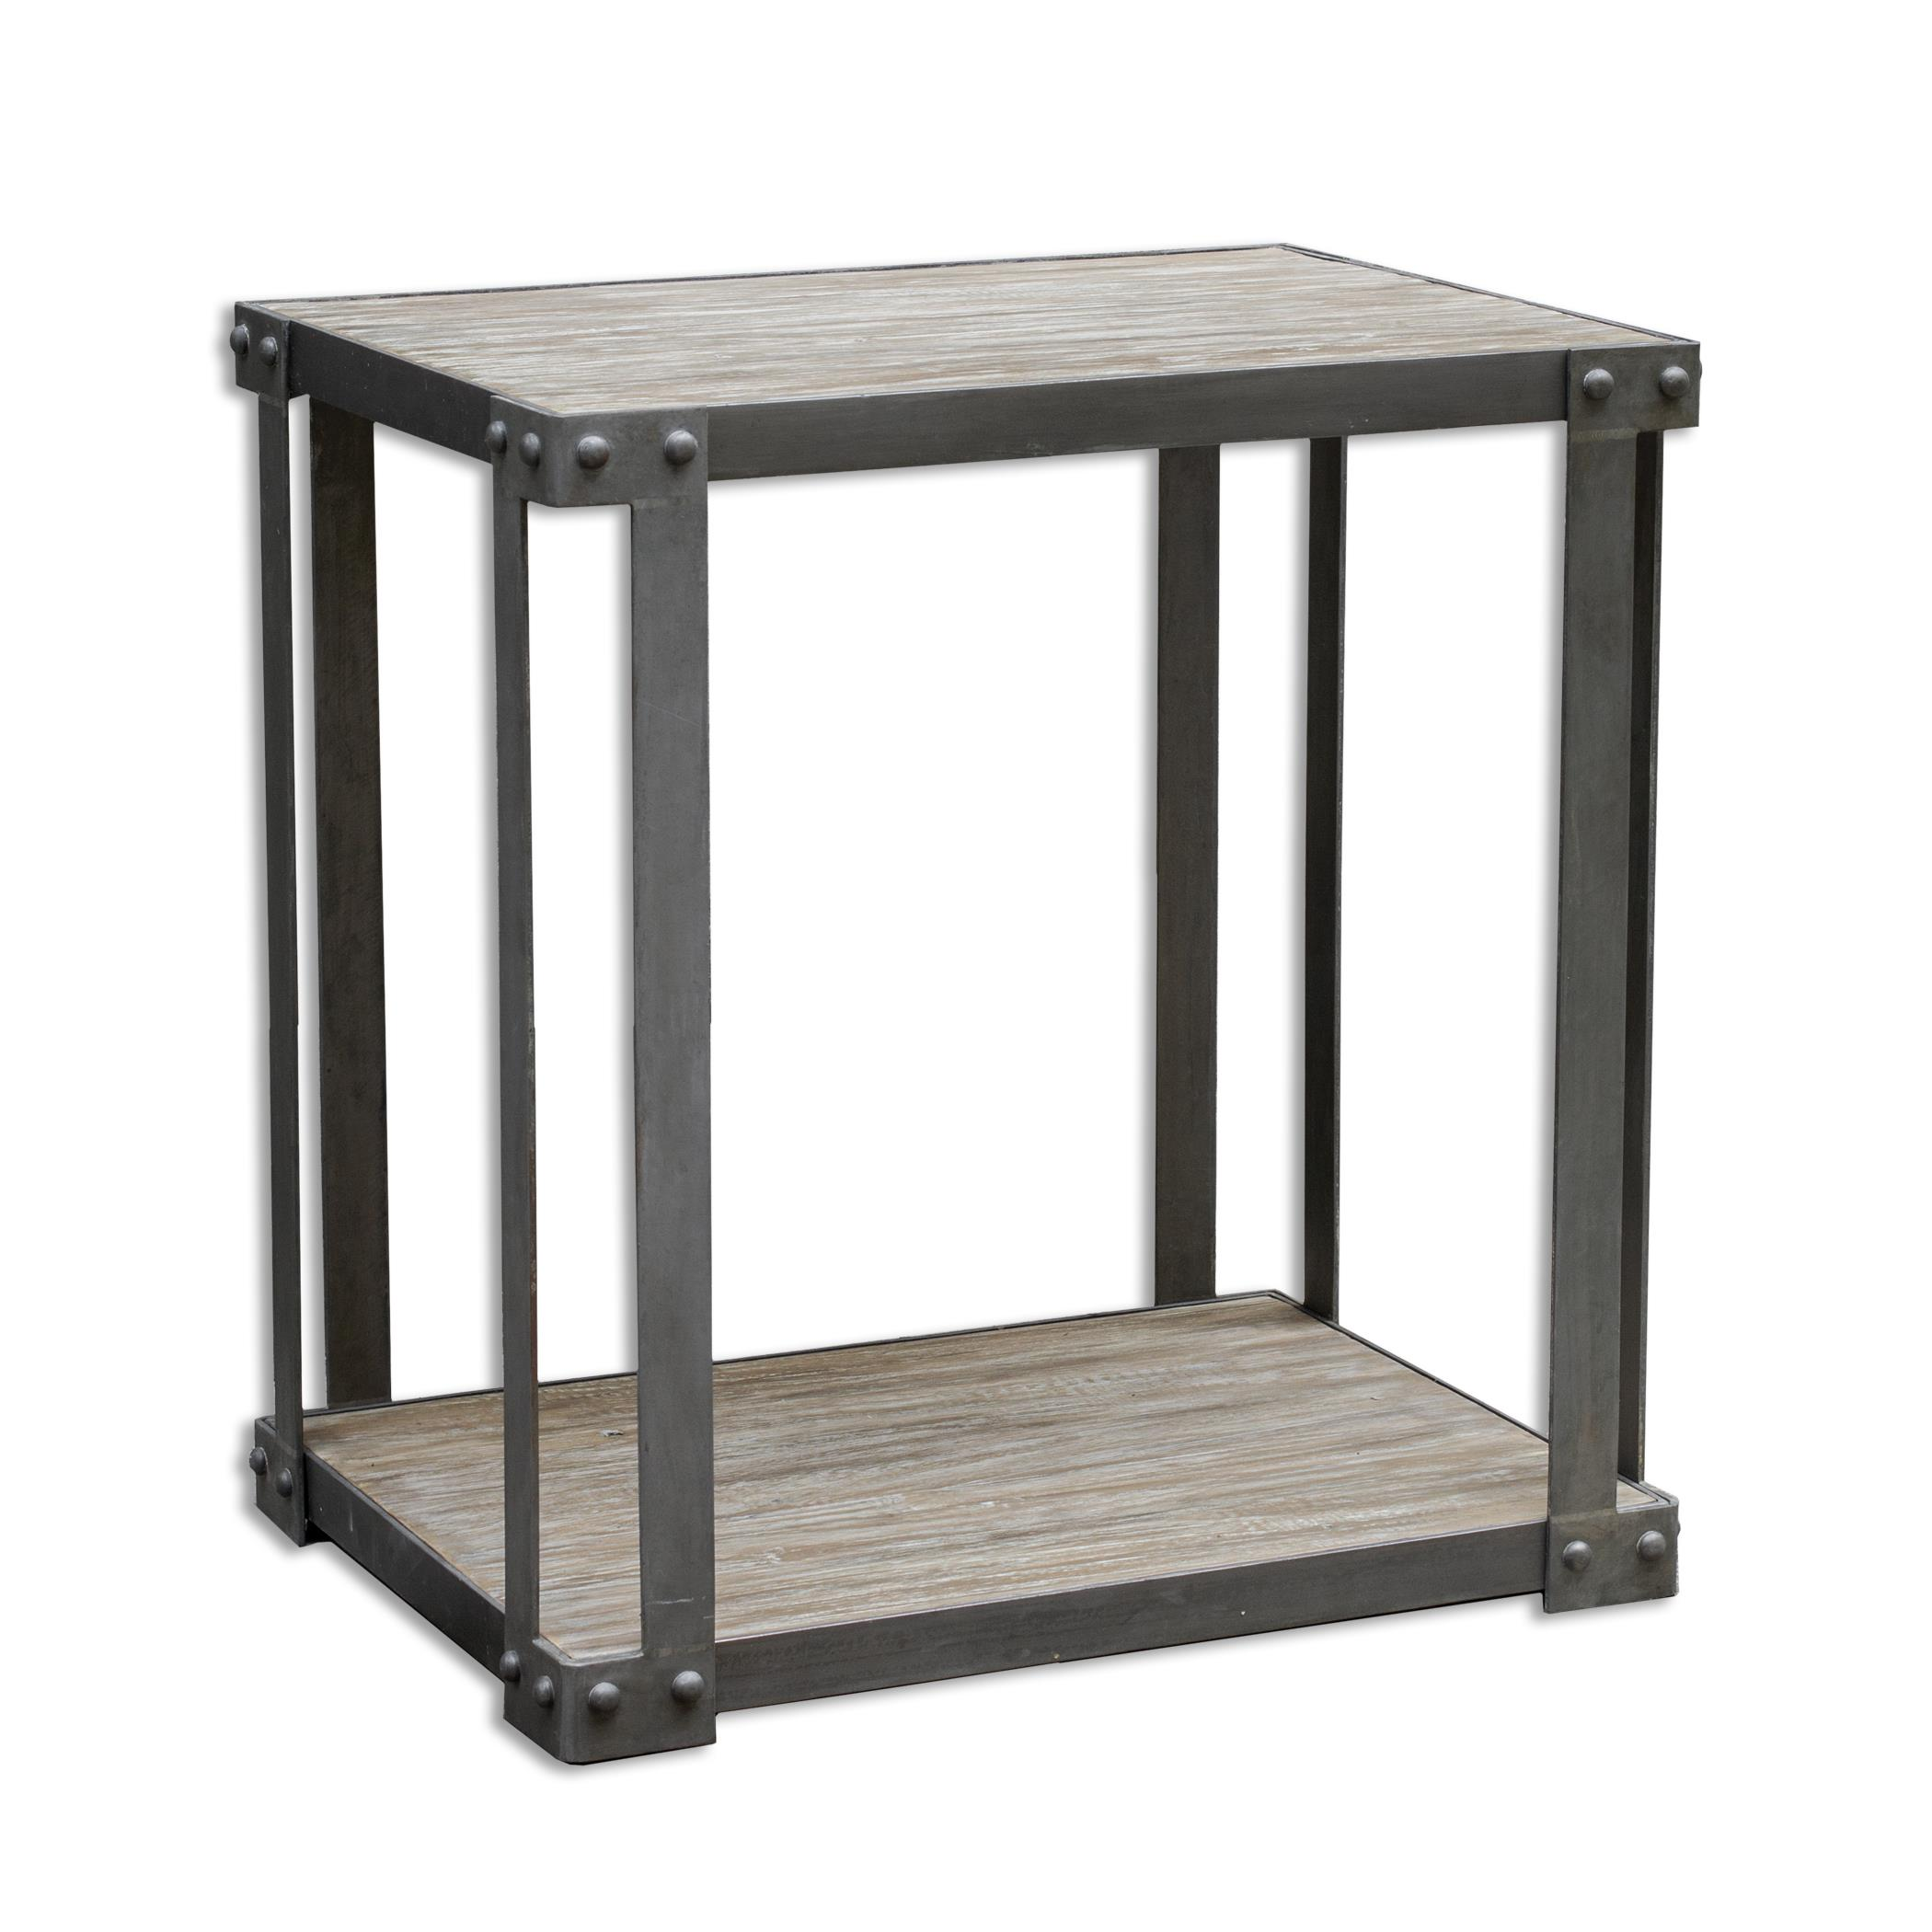 Uttermost Accent Furniture Makoto Industrial Side Table - Item Number: 25657